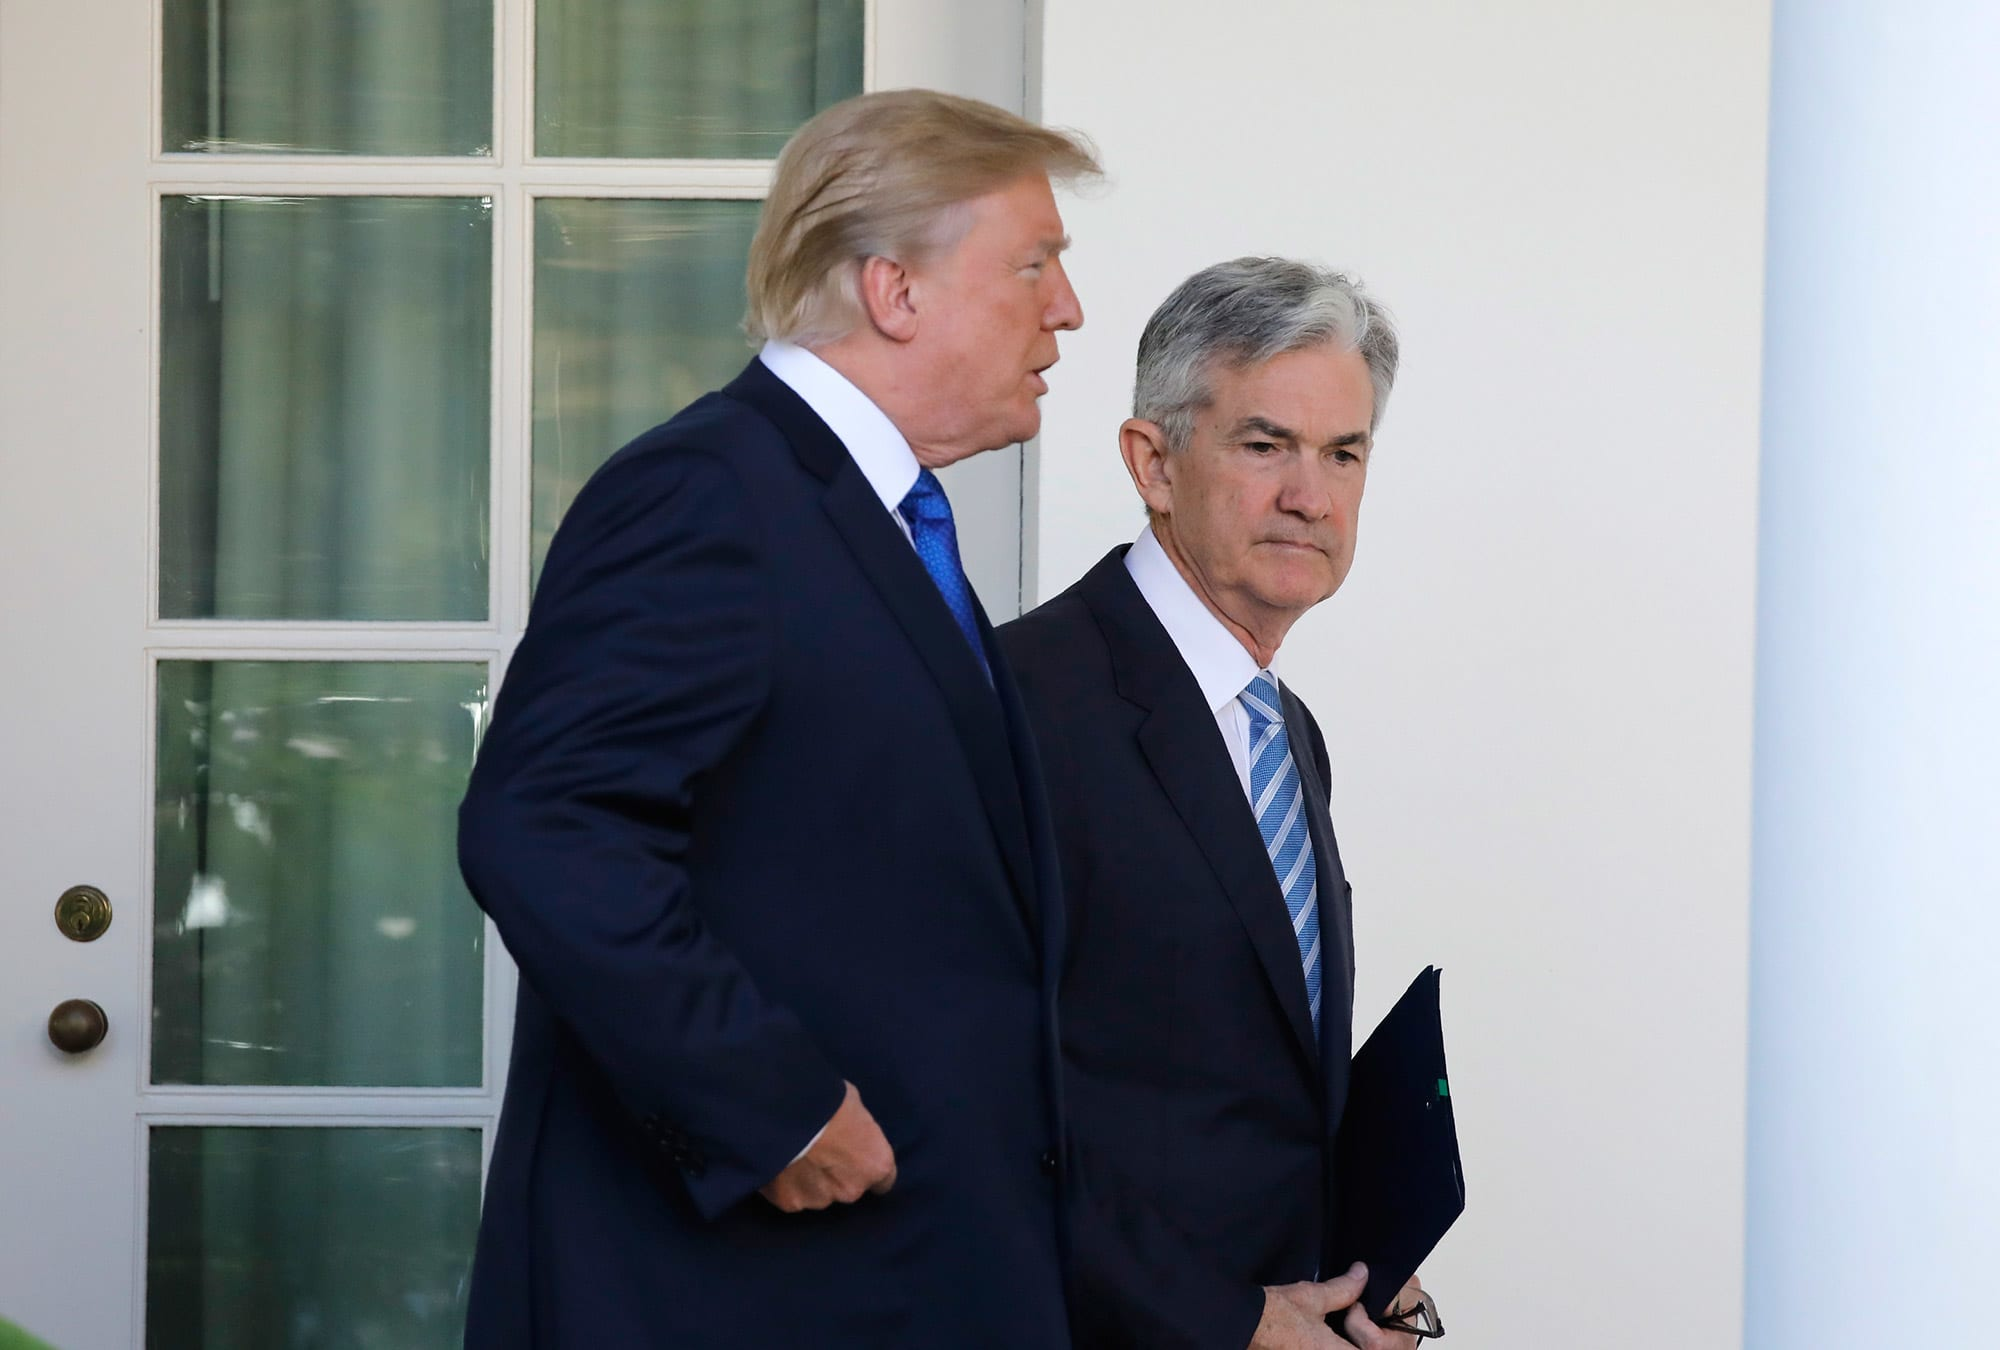 Trump cannot fire Federal Reserve Chair Jerome Powell: Morgan Stanley